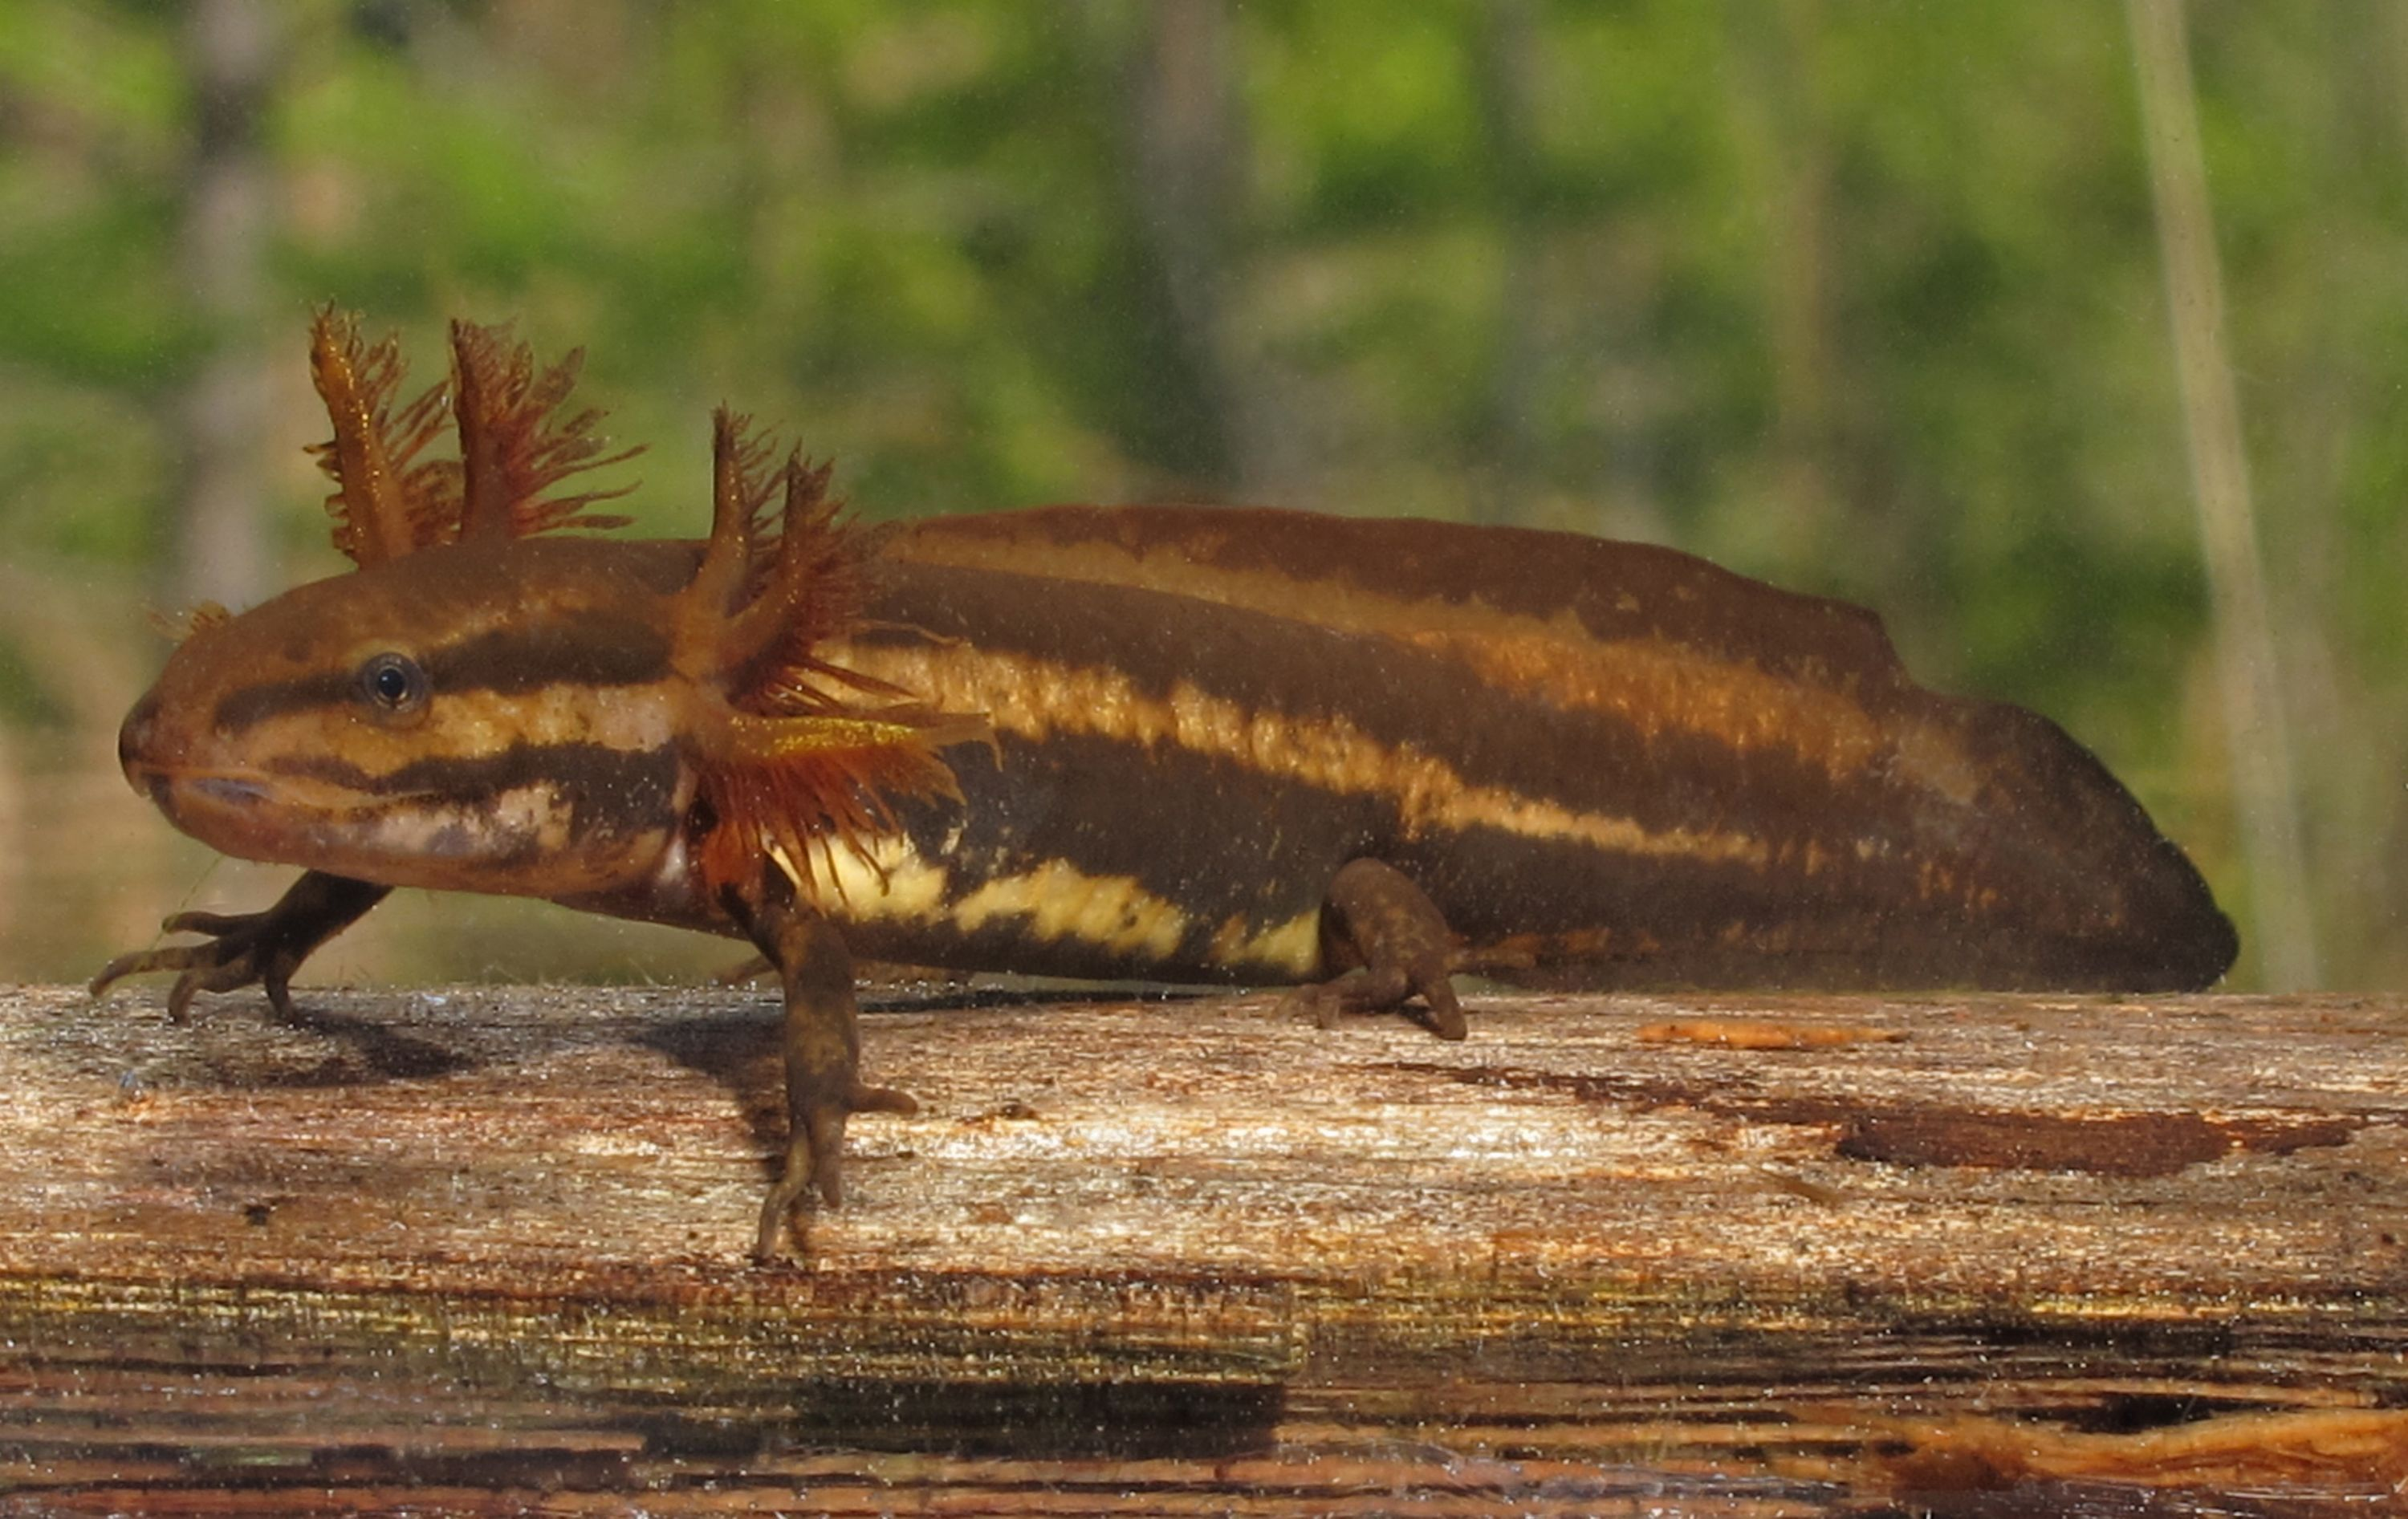 A frosted flatwood salamander in the nymph stage.